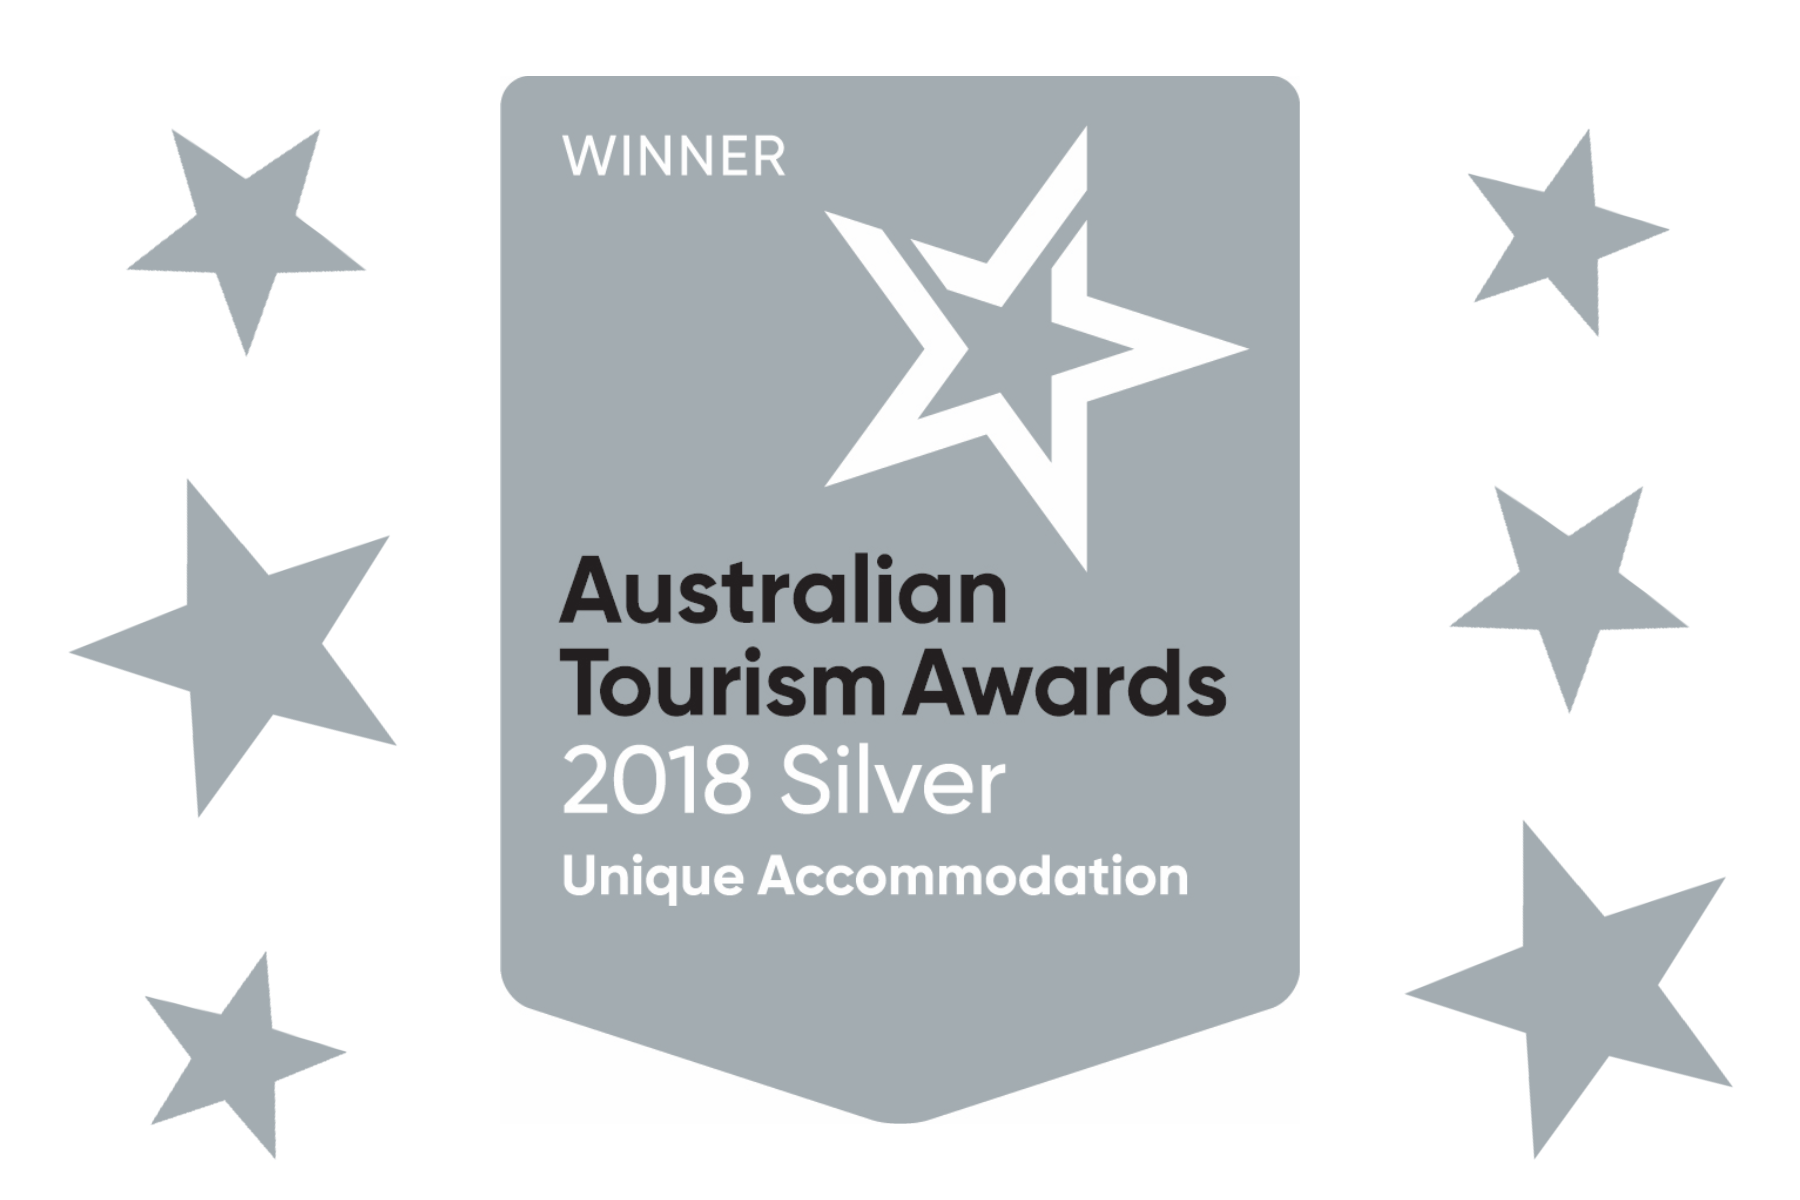 Australian Tourism Award silver winners 2018 Whitsunday Escape